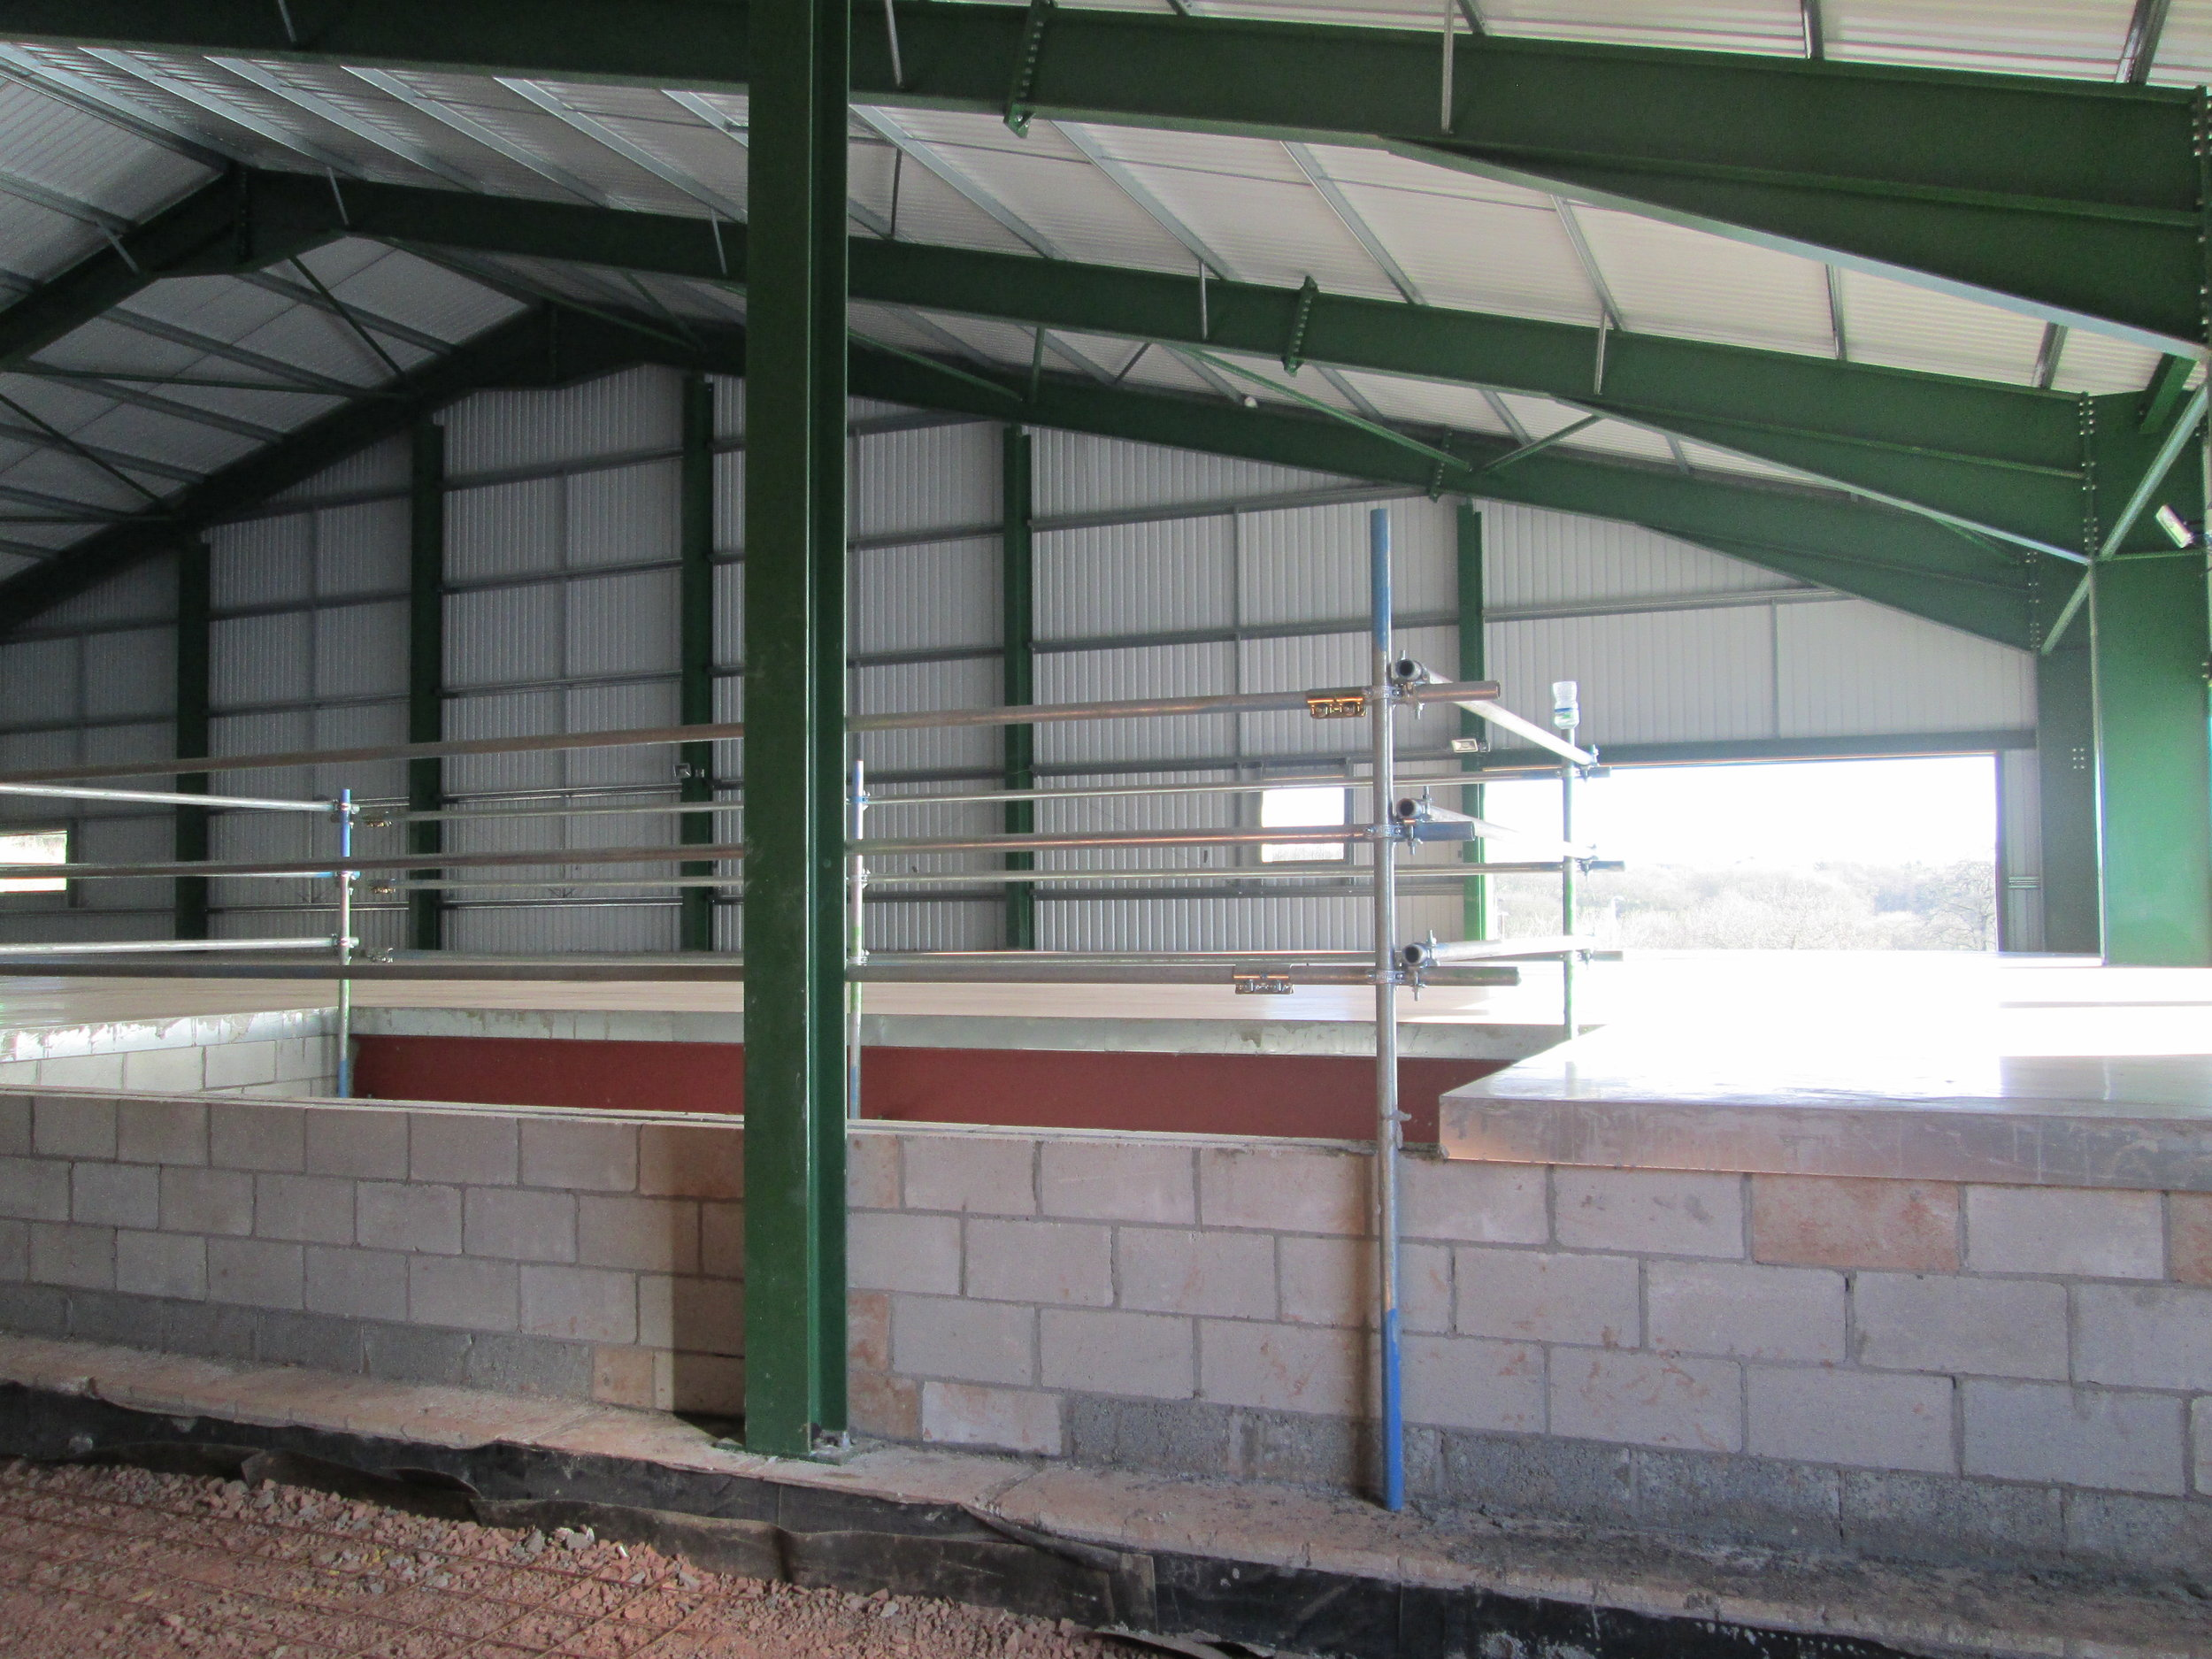 Stairs and lift to be fitted